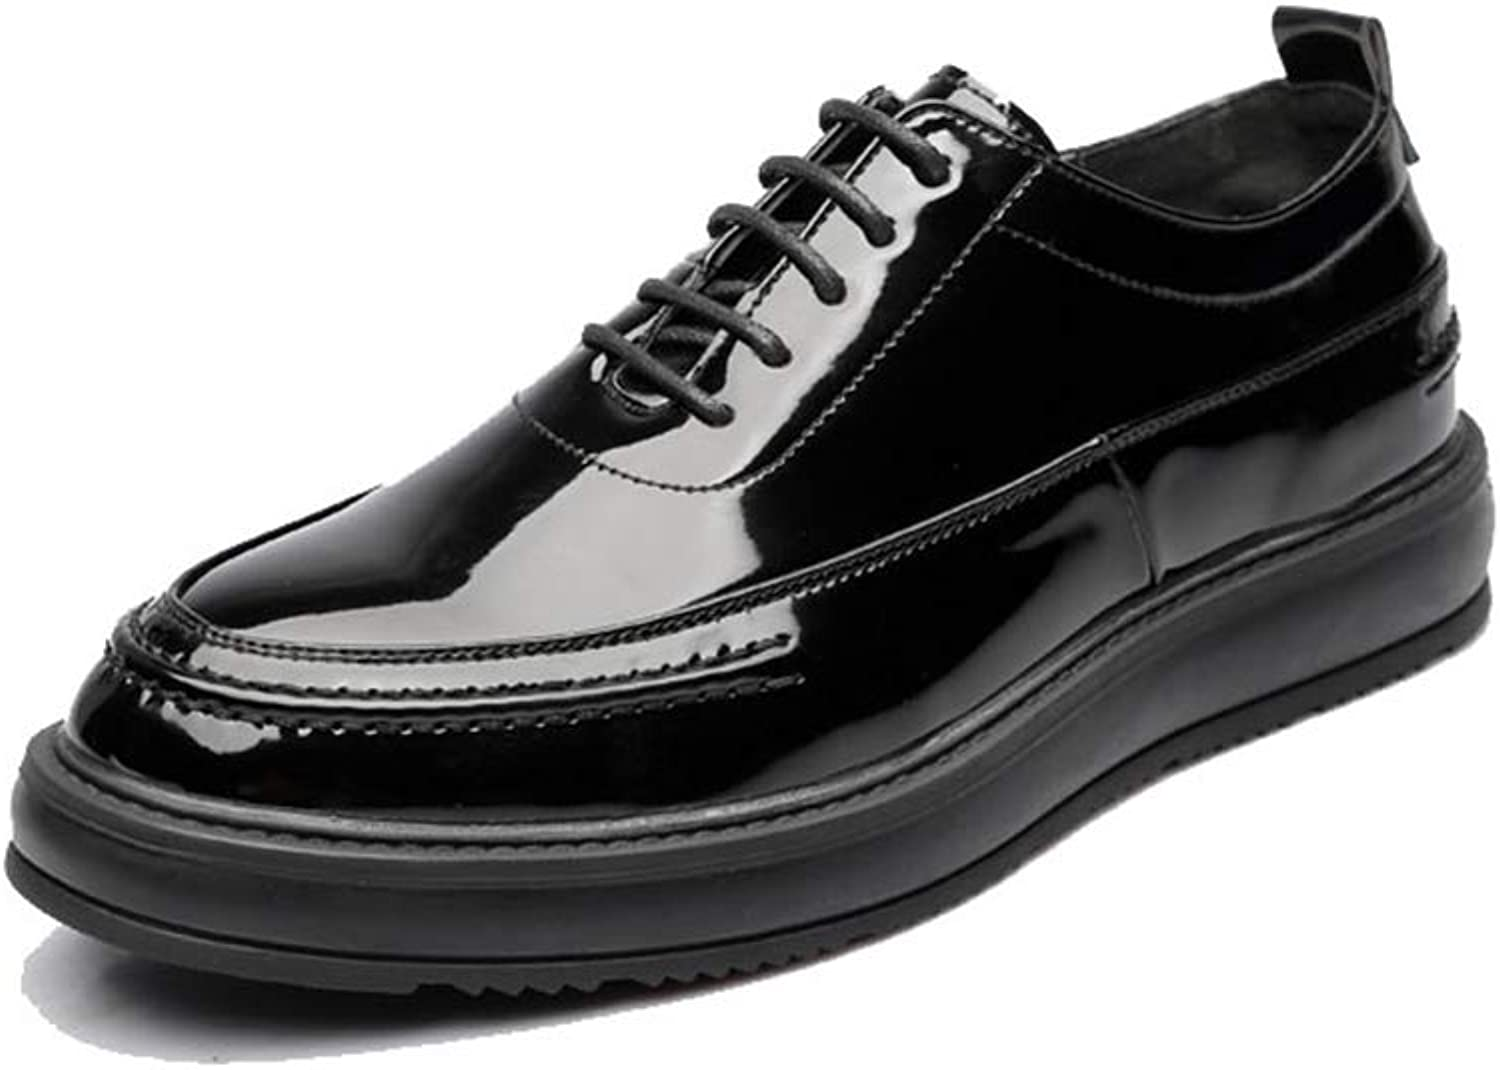 CHENDX shoes, Men's Fashion British Style Pointed toe Oxford Casual Trend Comfortable Outsole Formal shoes (Patent Leather Optional) (color   Paint black, Size   8 UK)